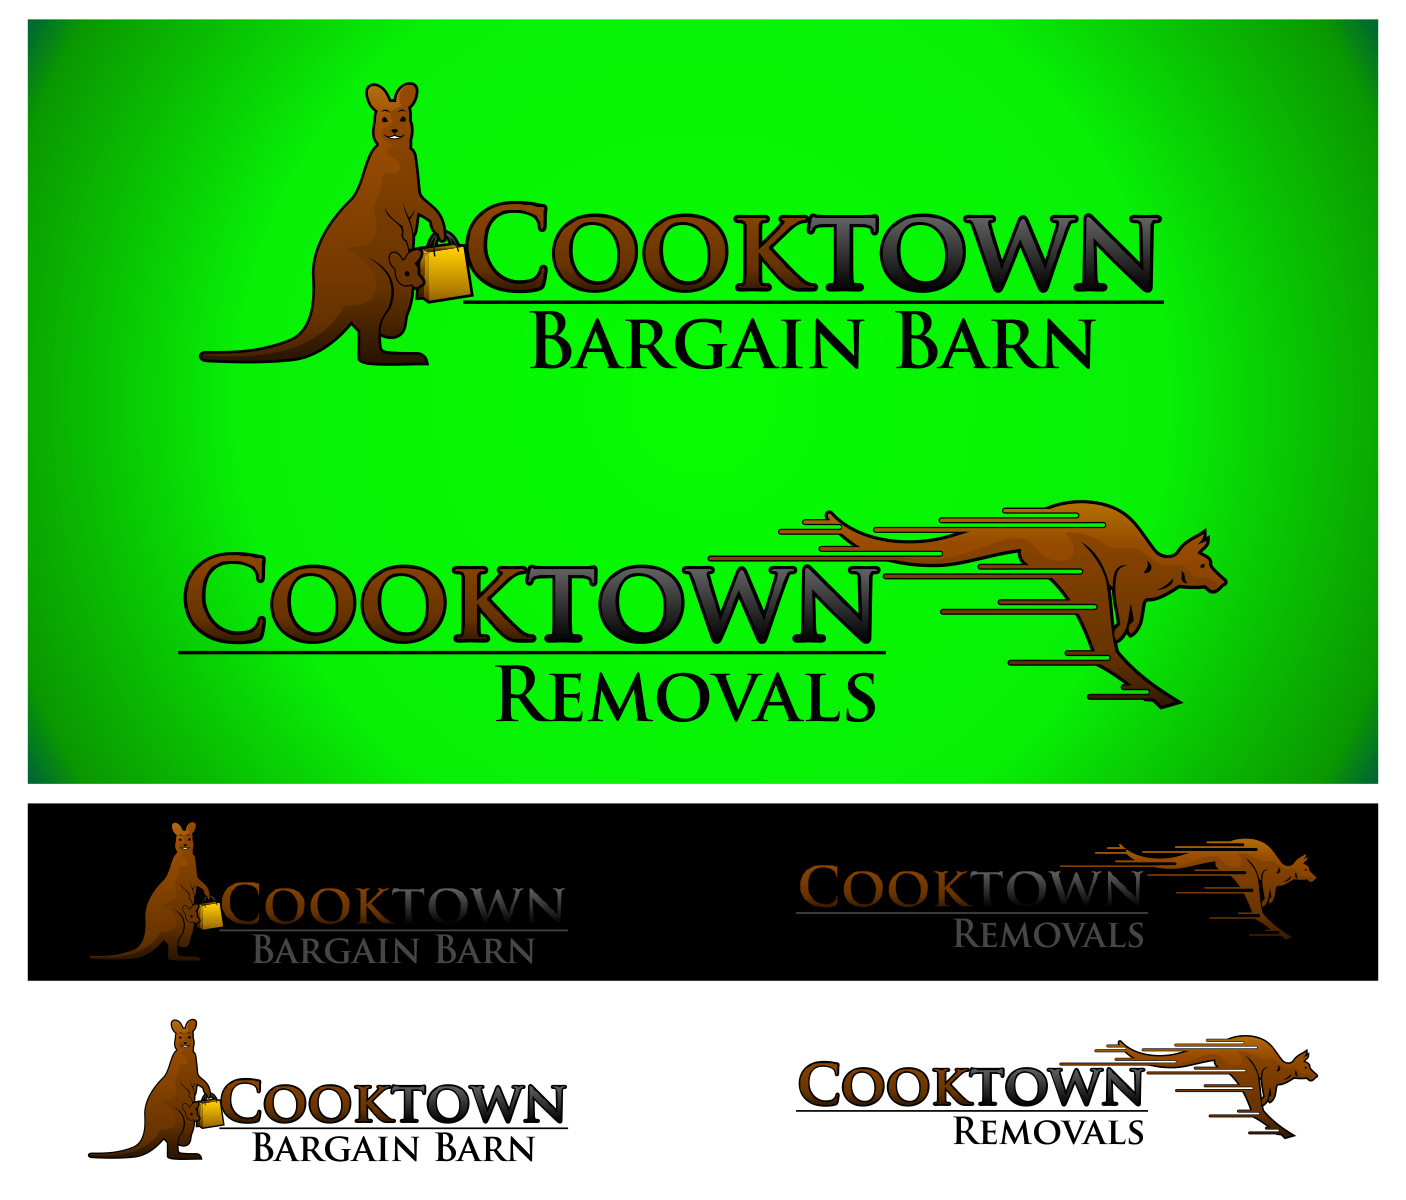 New logo wanted for We want two logos...Cooktown Bargain Barn and Cooktown Removals